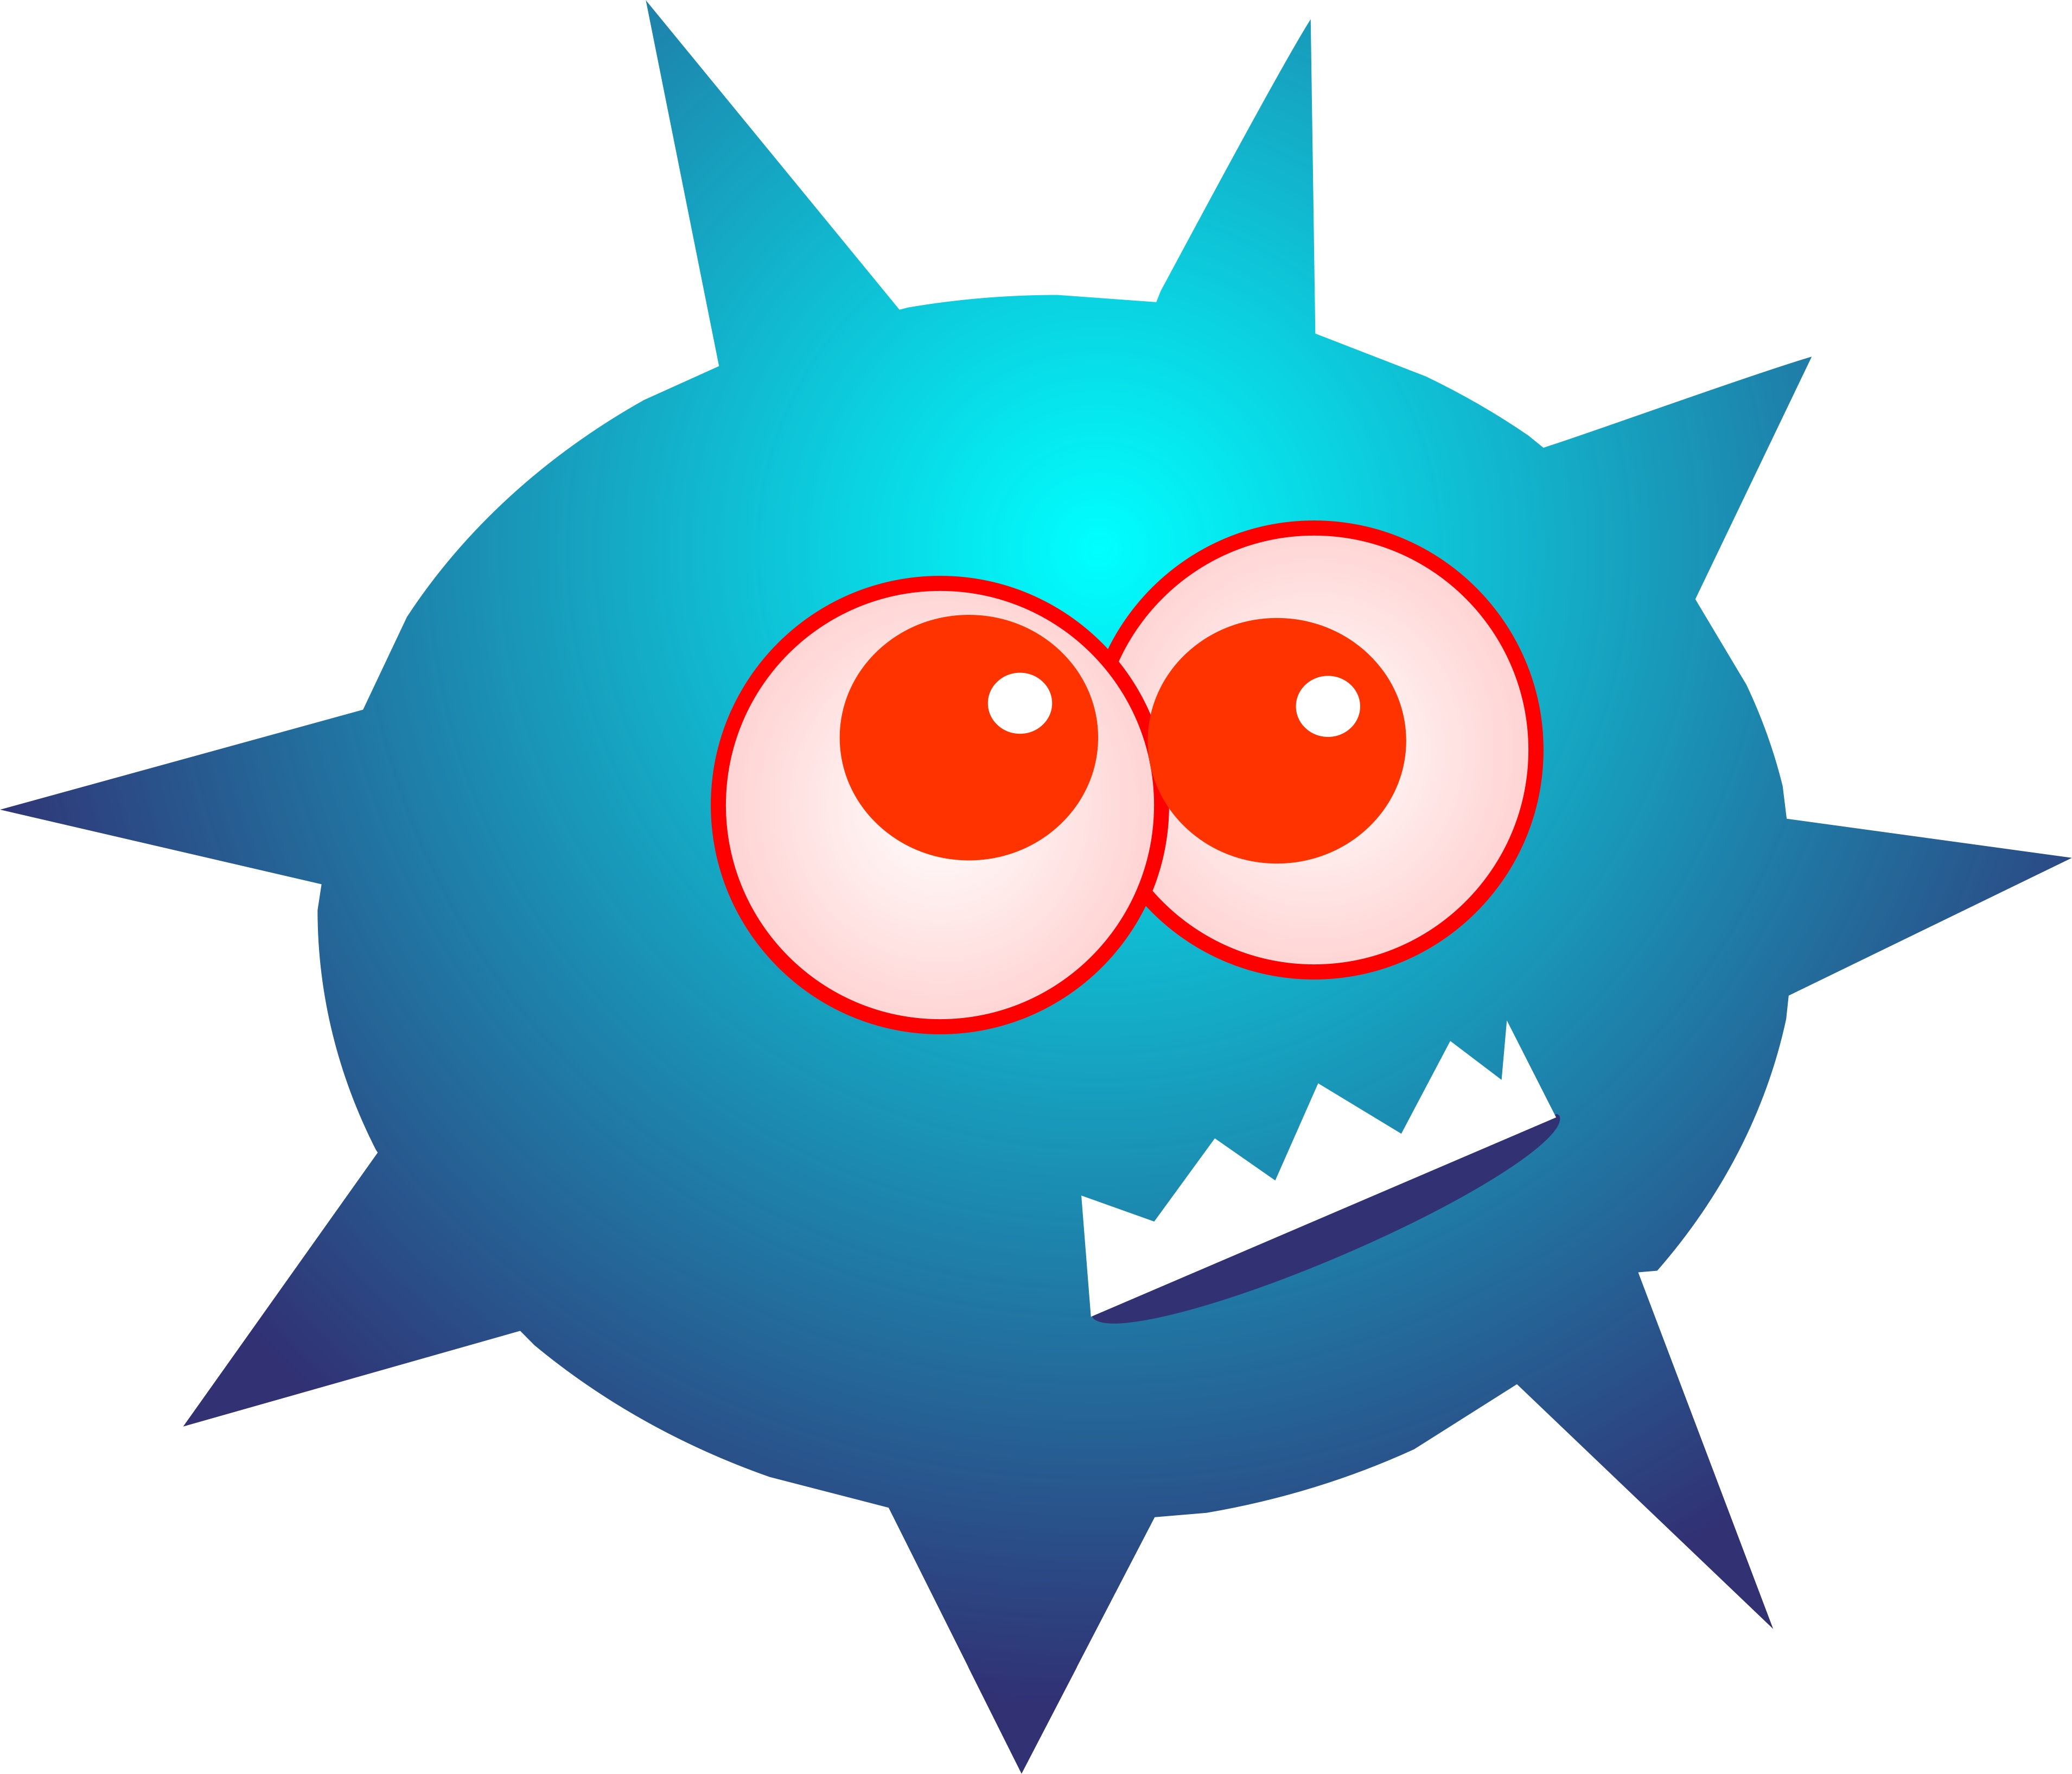 Free PNG Germs - 67421